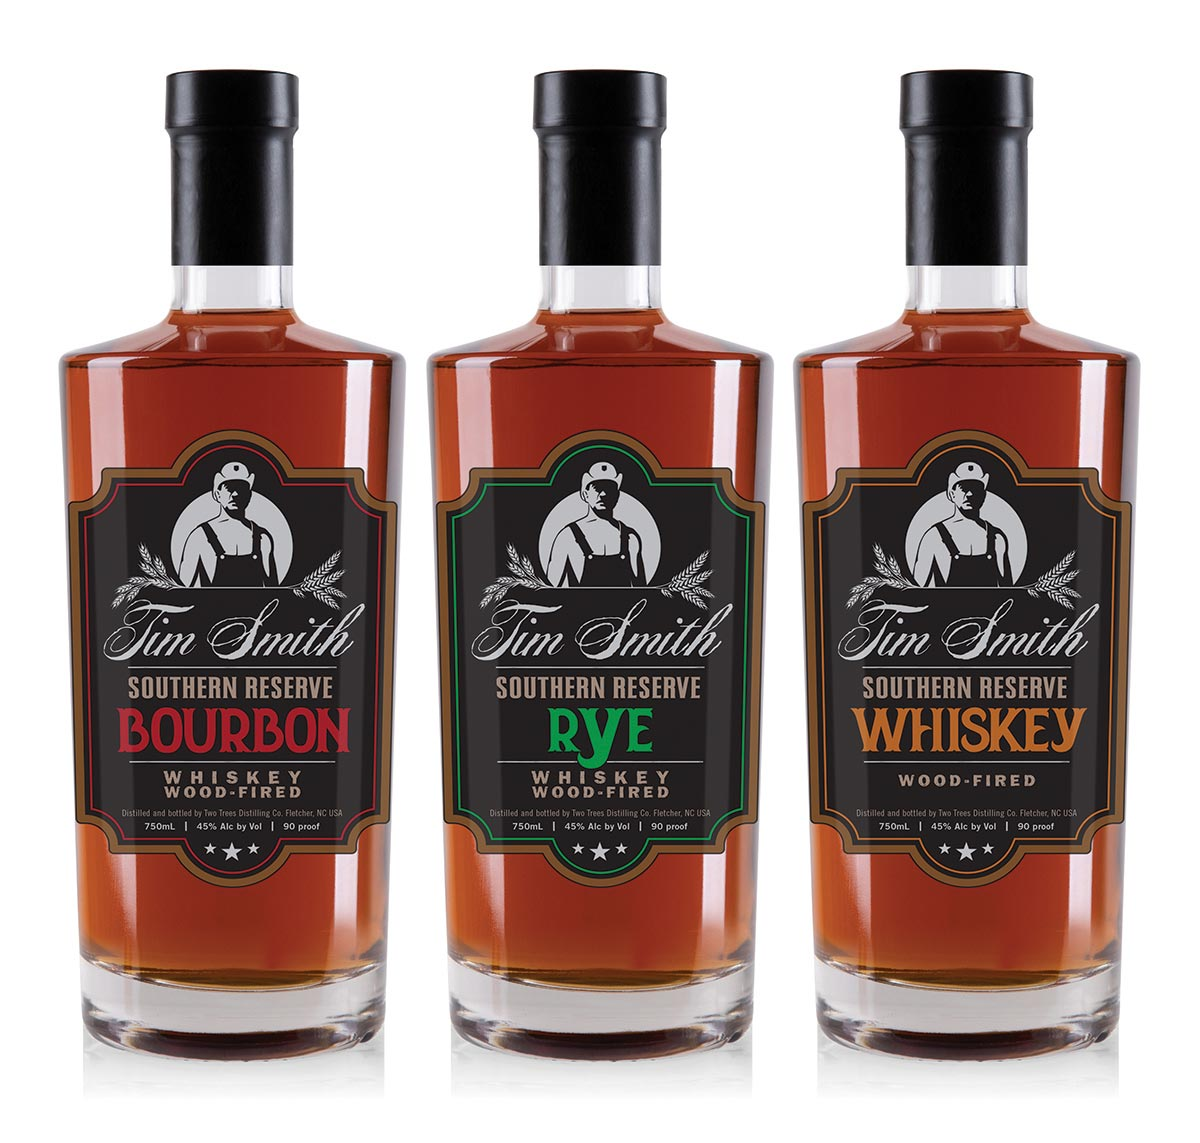 Brescome Barton Launches Southern Reserve Whiskey Line